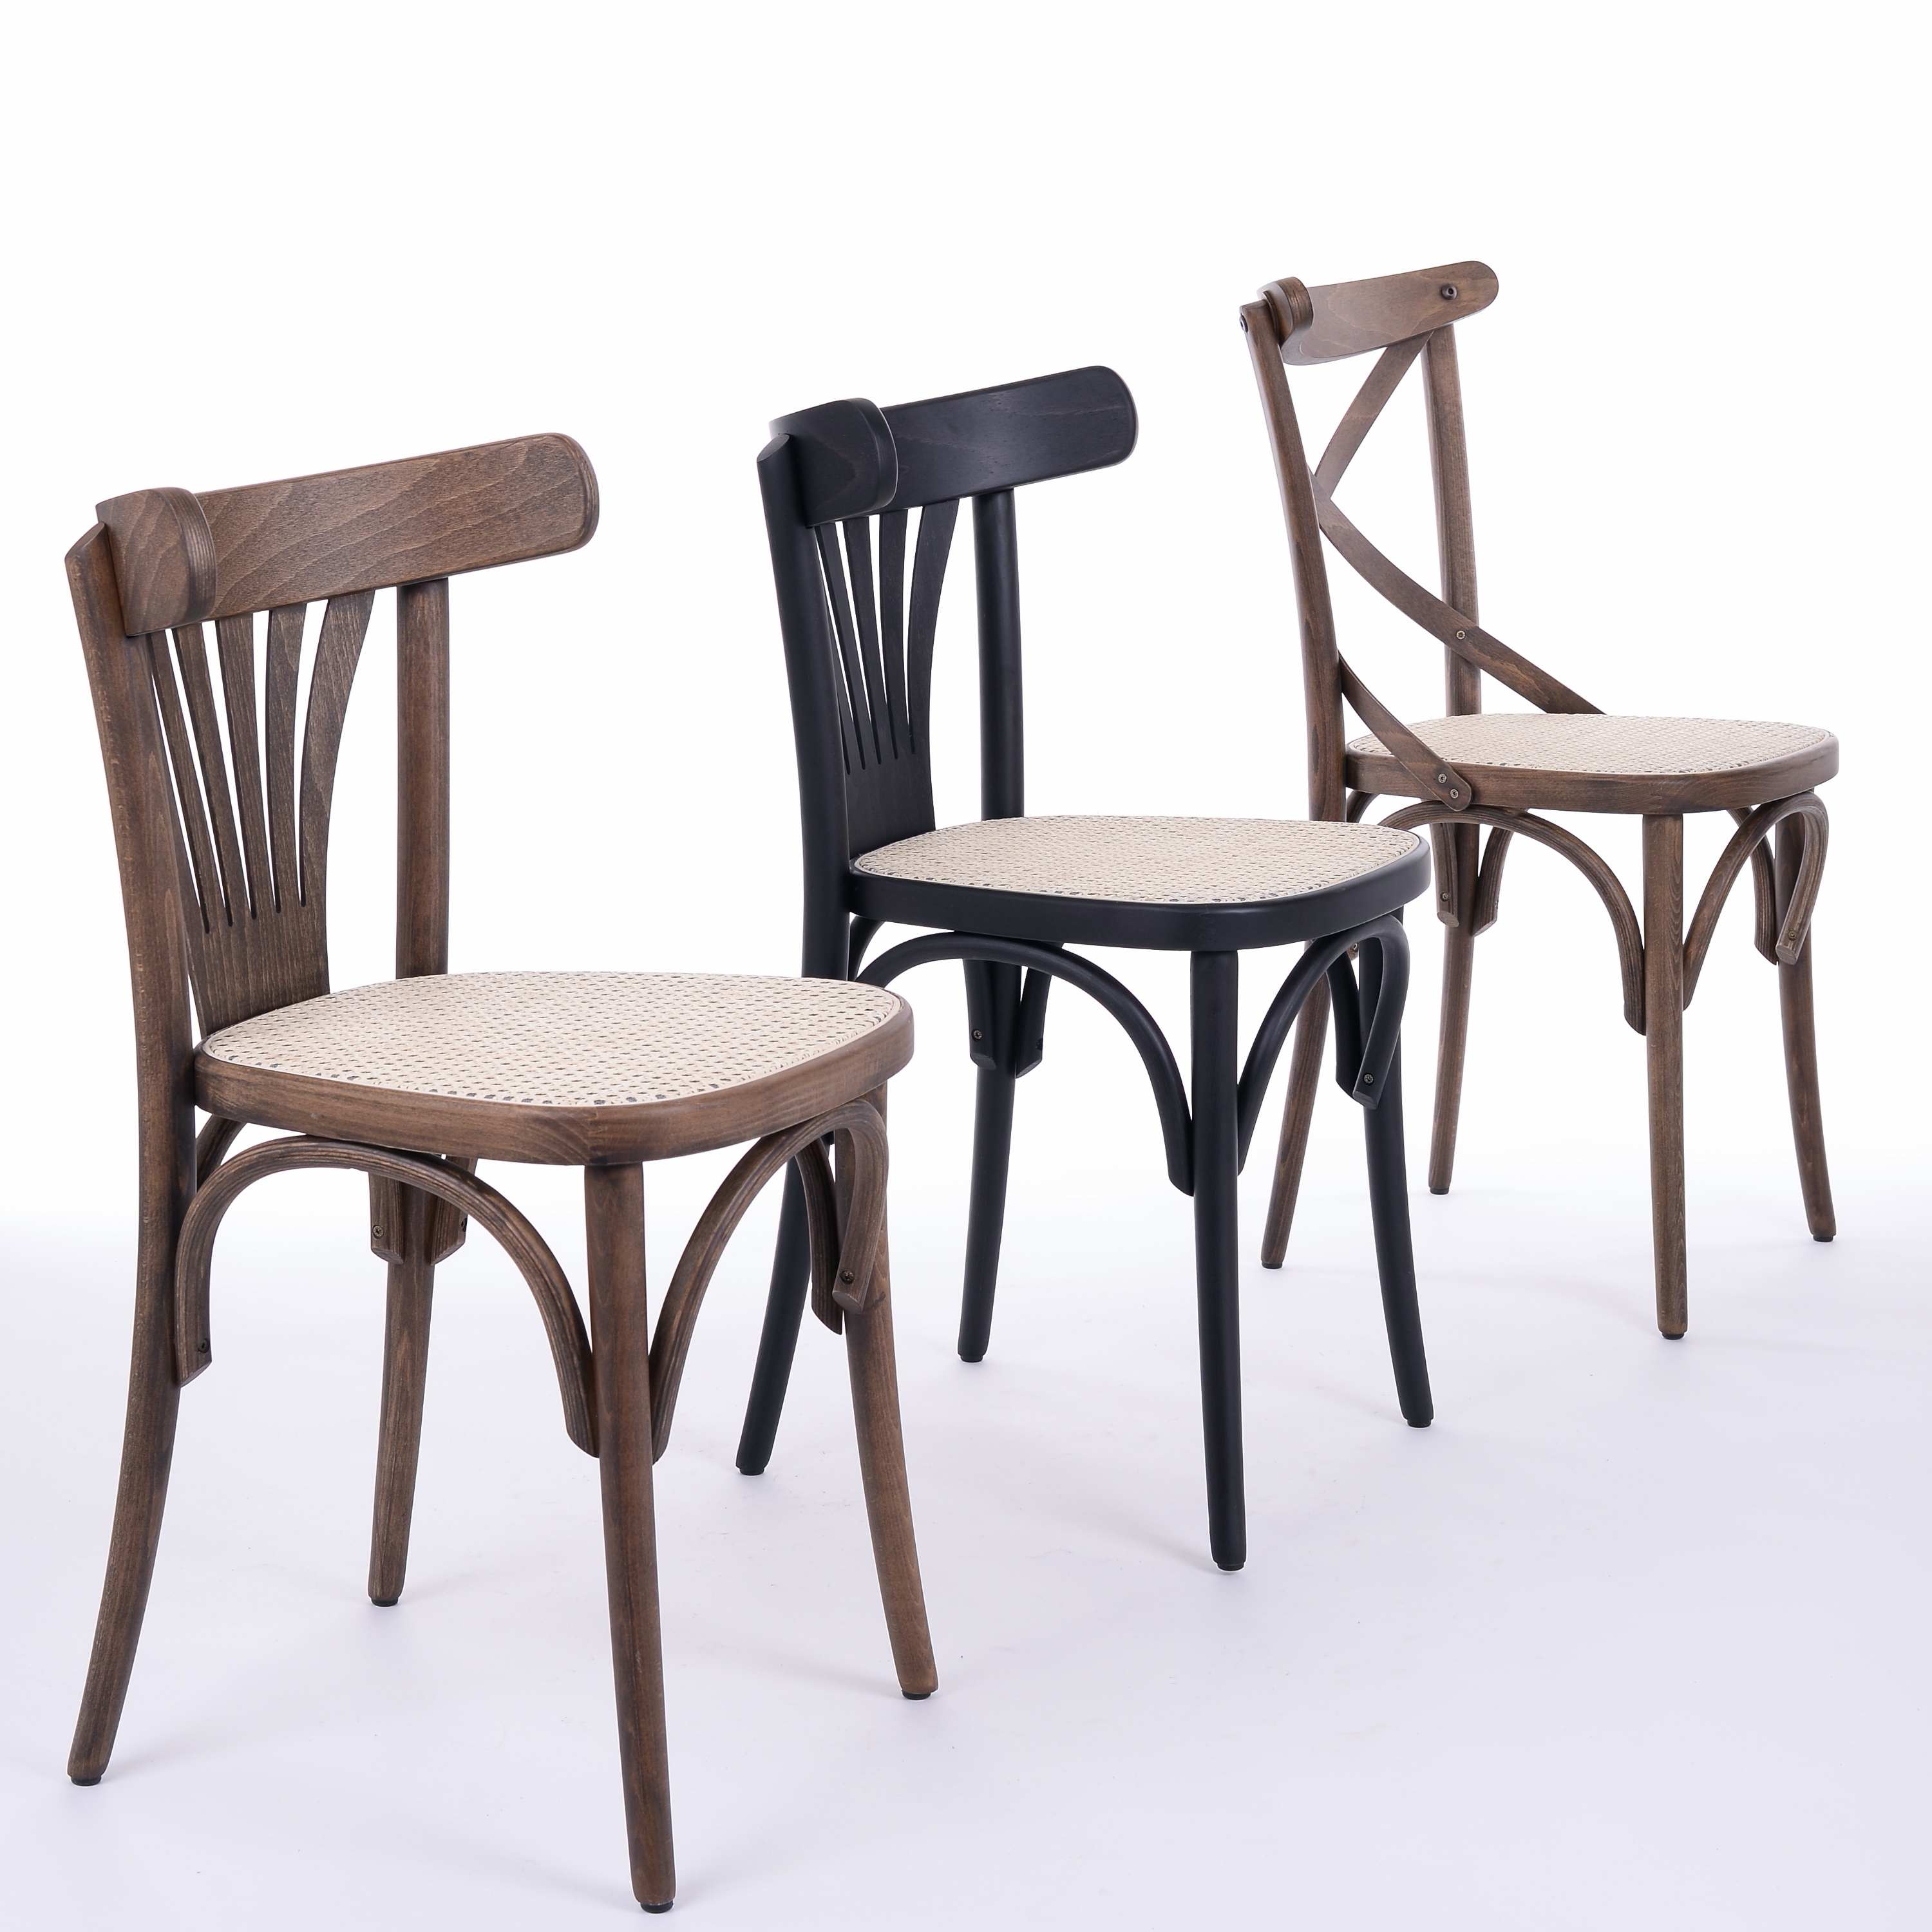 Bentwood Cane Restaurant Chairs